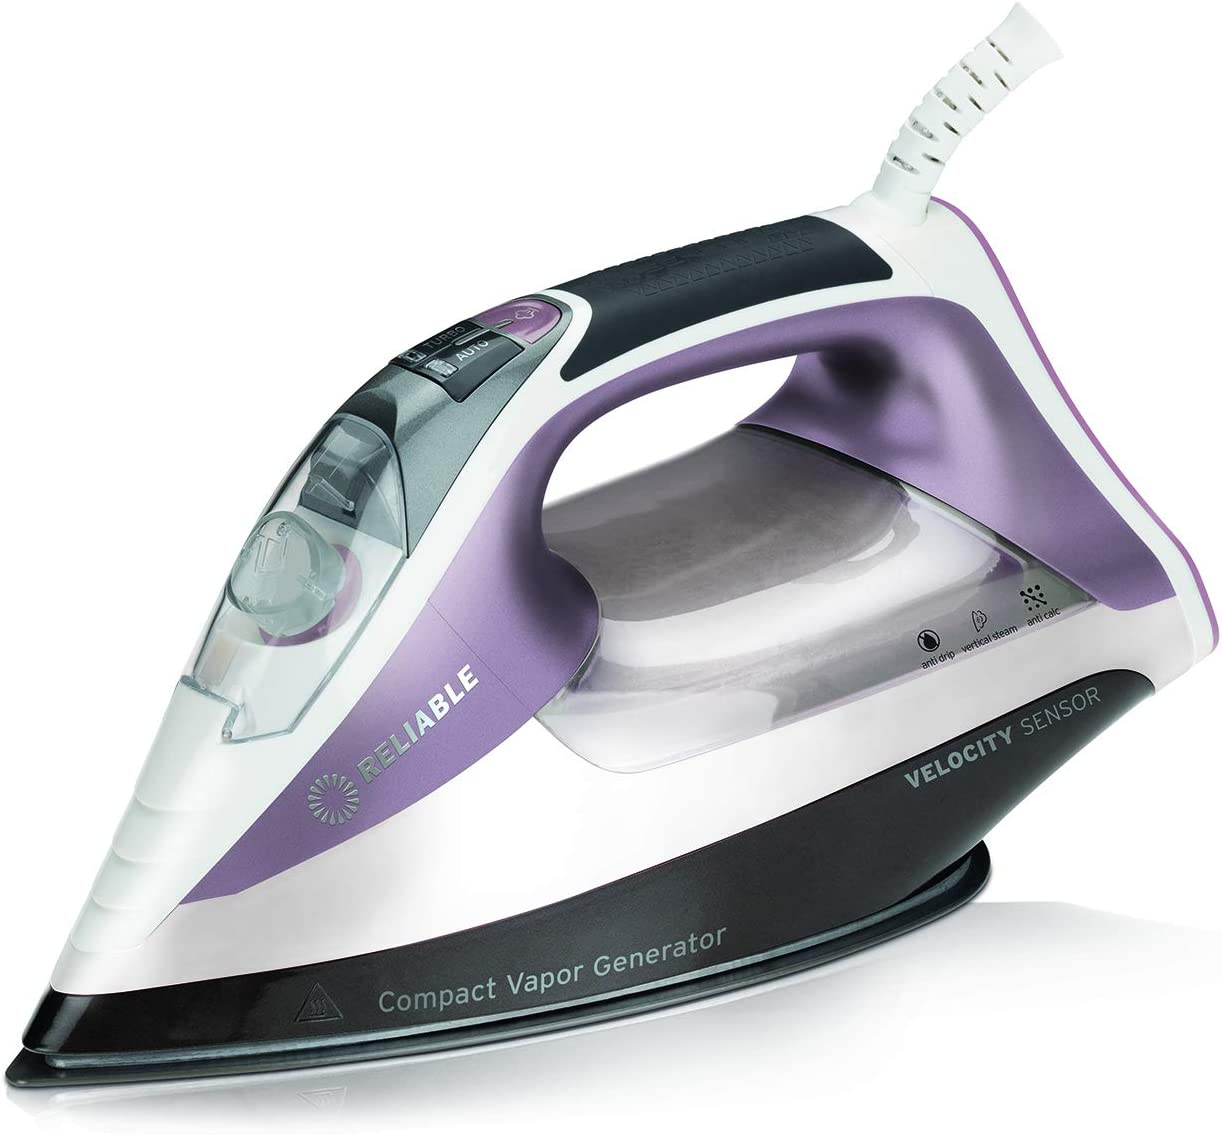 Reliable Velocity 230IR Steam Iron - Compact Sensor Vapor Generator Steam Iron with Auto/Turbo Setting, Anodized Aluminum Soleplate, Heavy-Duty Continuous Steam, Zero Leaks, Perfect Temperature